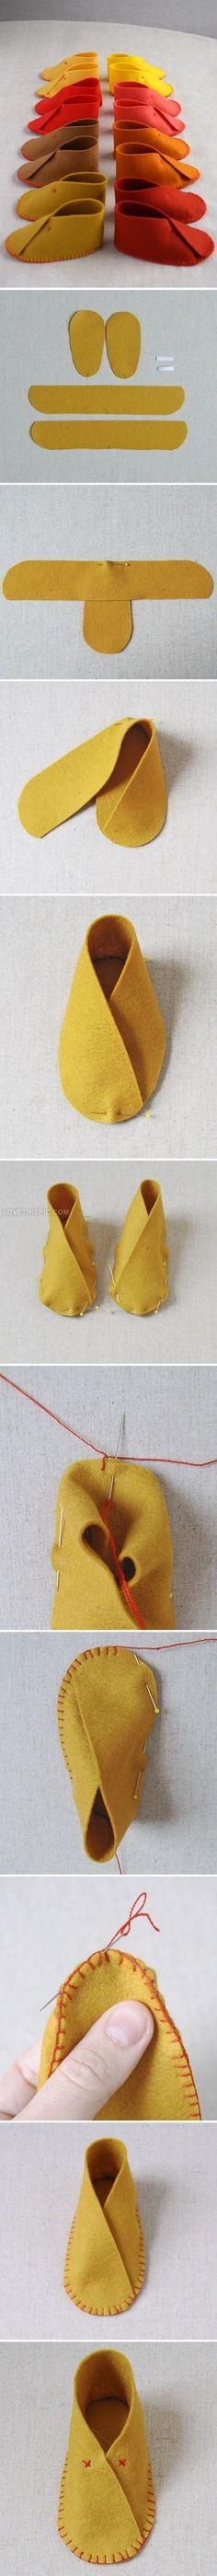 20 DIY Baby Shoes Ideas With Free Patterns and Instructions